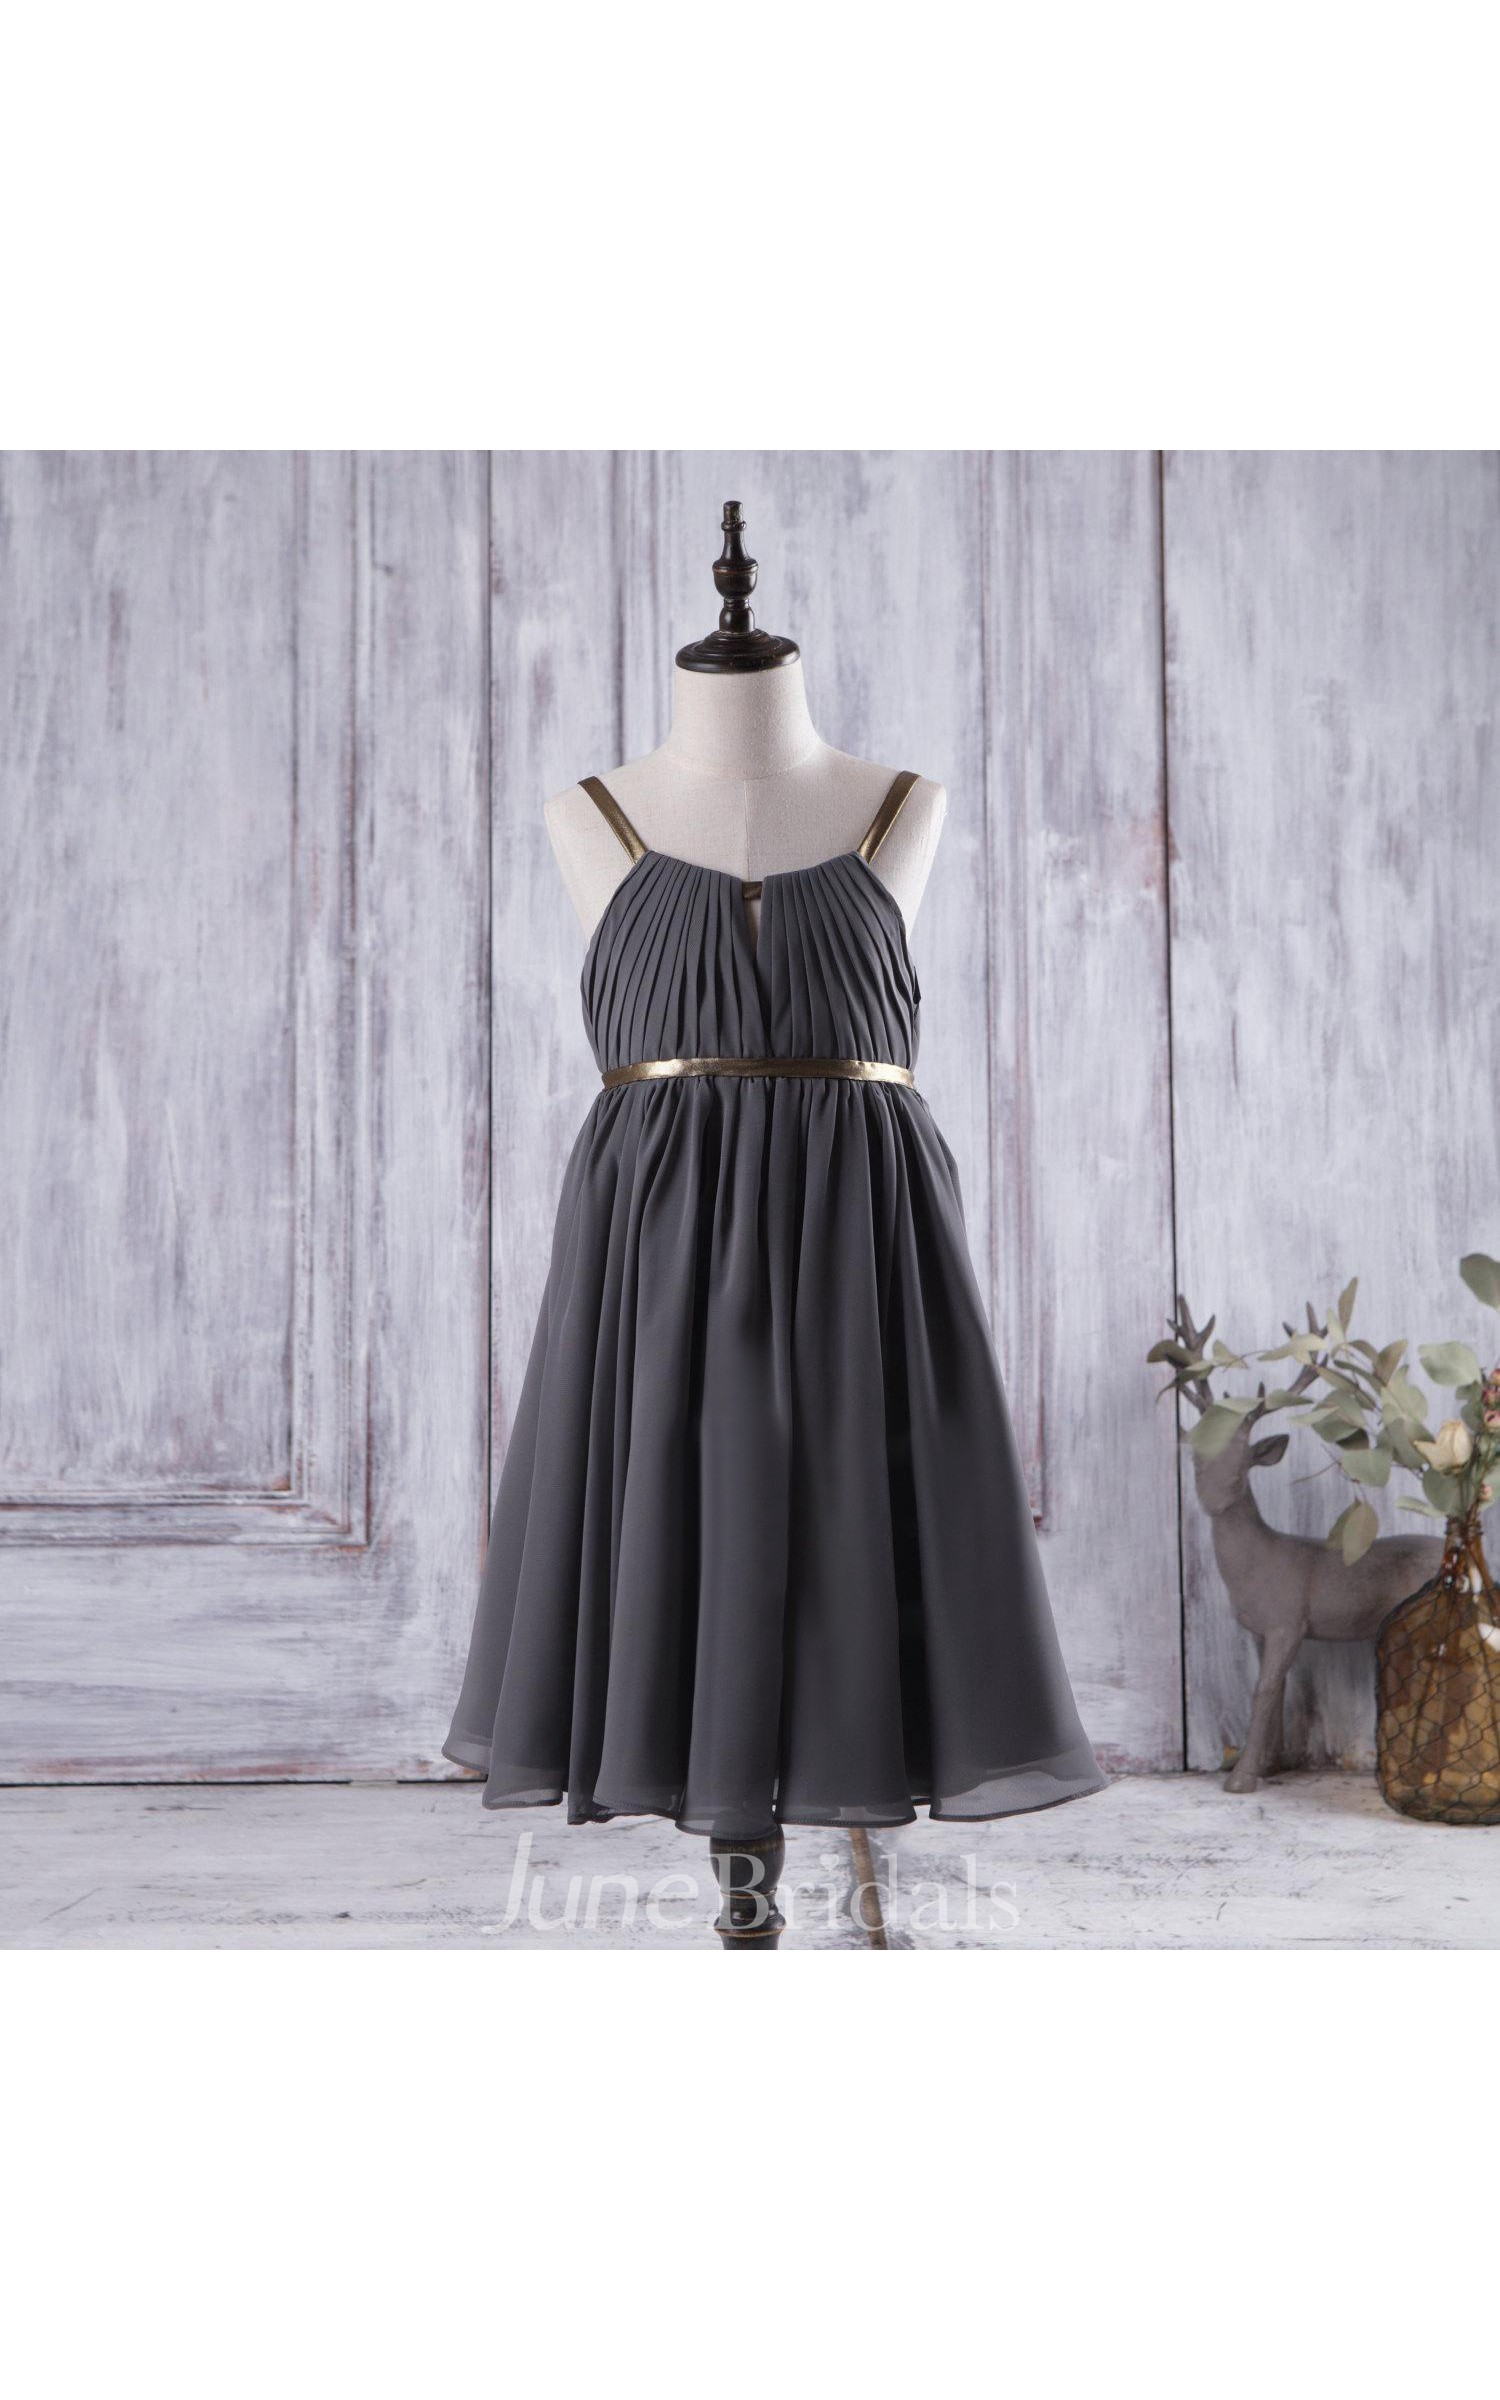 Flower girl dresses charcoal grey wedding dresses in for Postpartum dresses for wedding